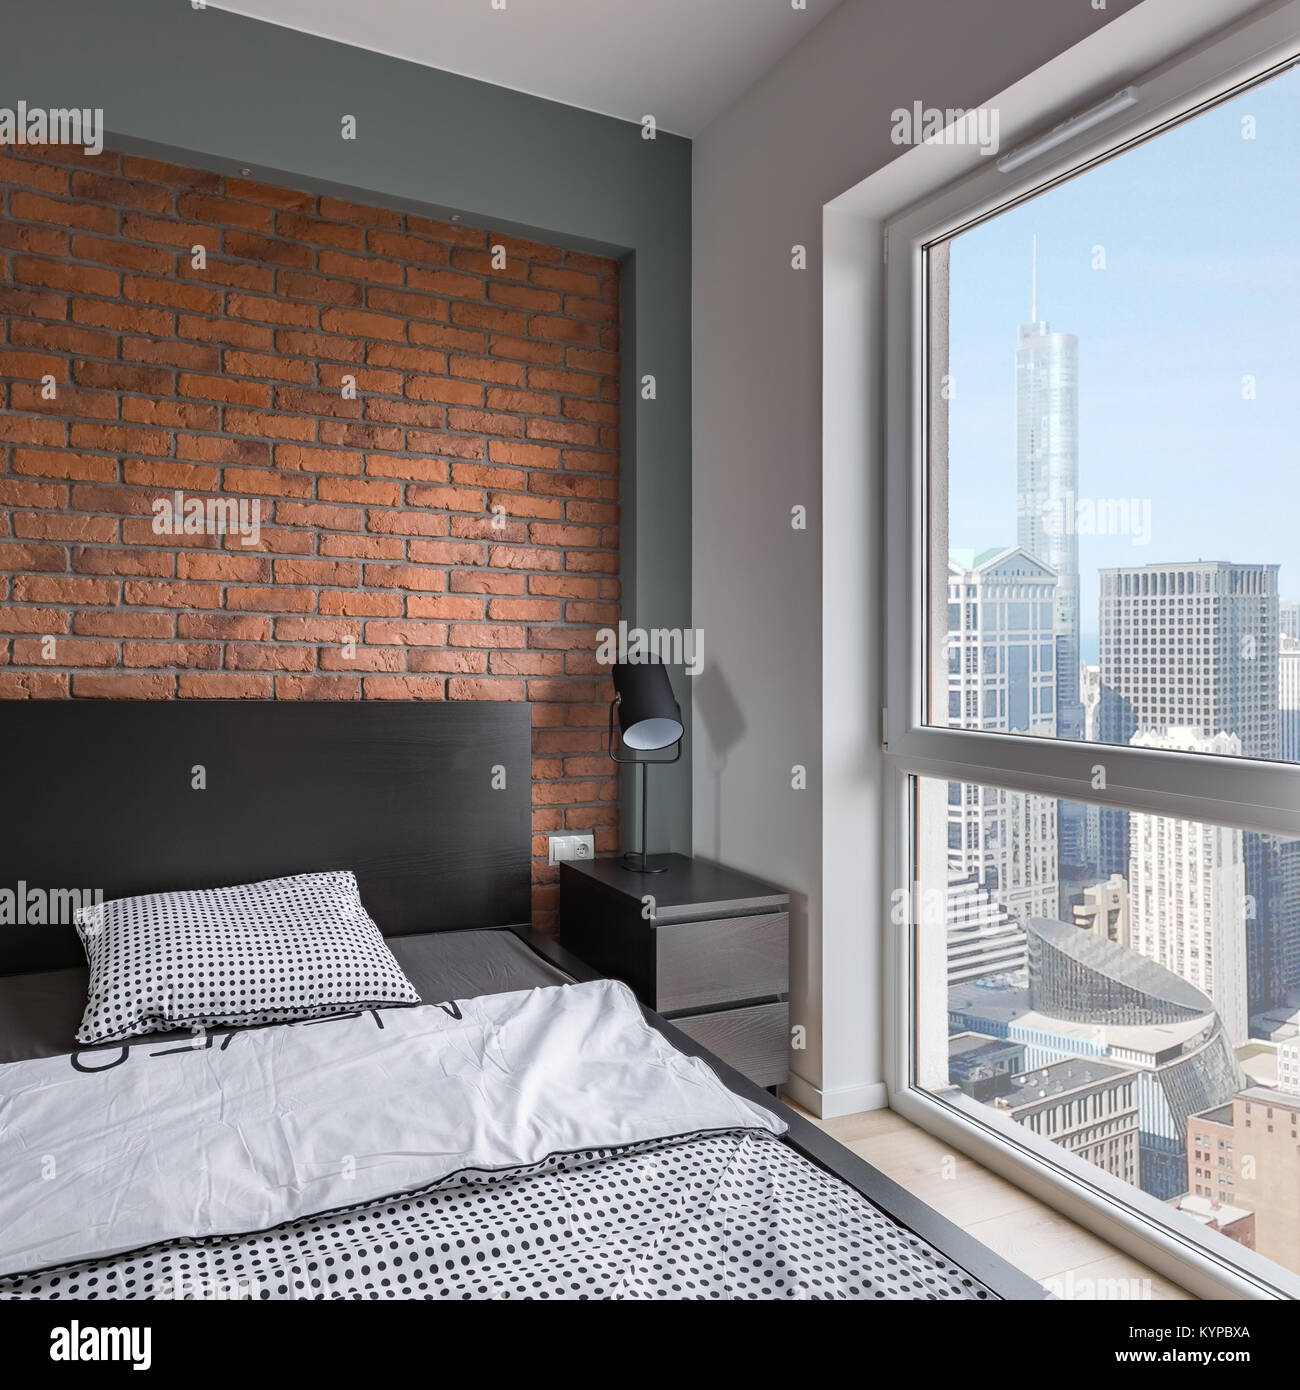 industrielle schlafzimmer mit bett rote wand und fenster stockfoto bild 171981330 alamy. Black Bedroom Furniture Sets. Home Design Ideas